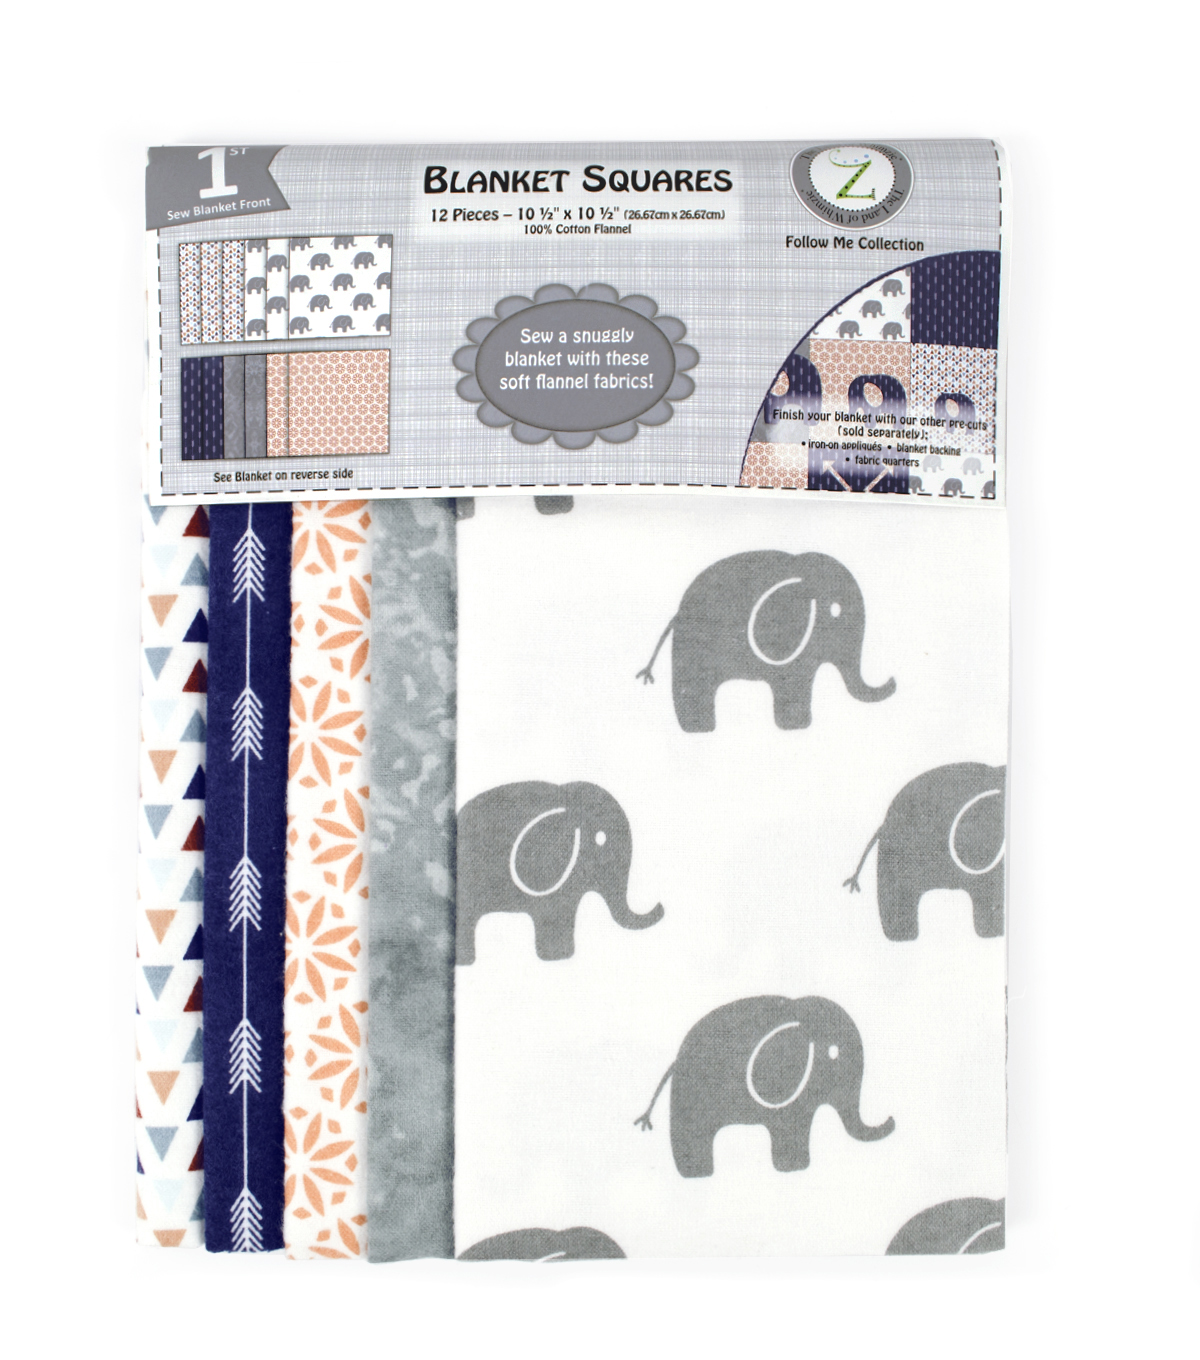 Land of Whimzie Follow Me Flannel Blanket Squares - 12 pcs 10.5\u0022x10.5\u0022